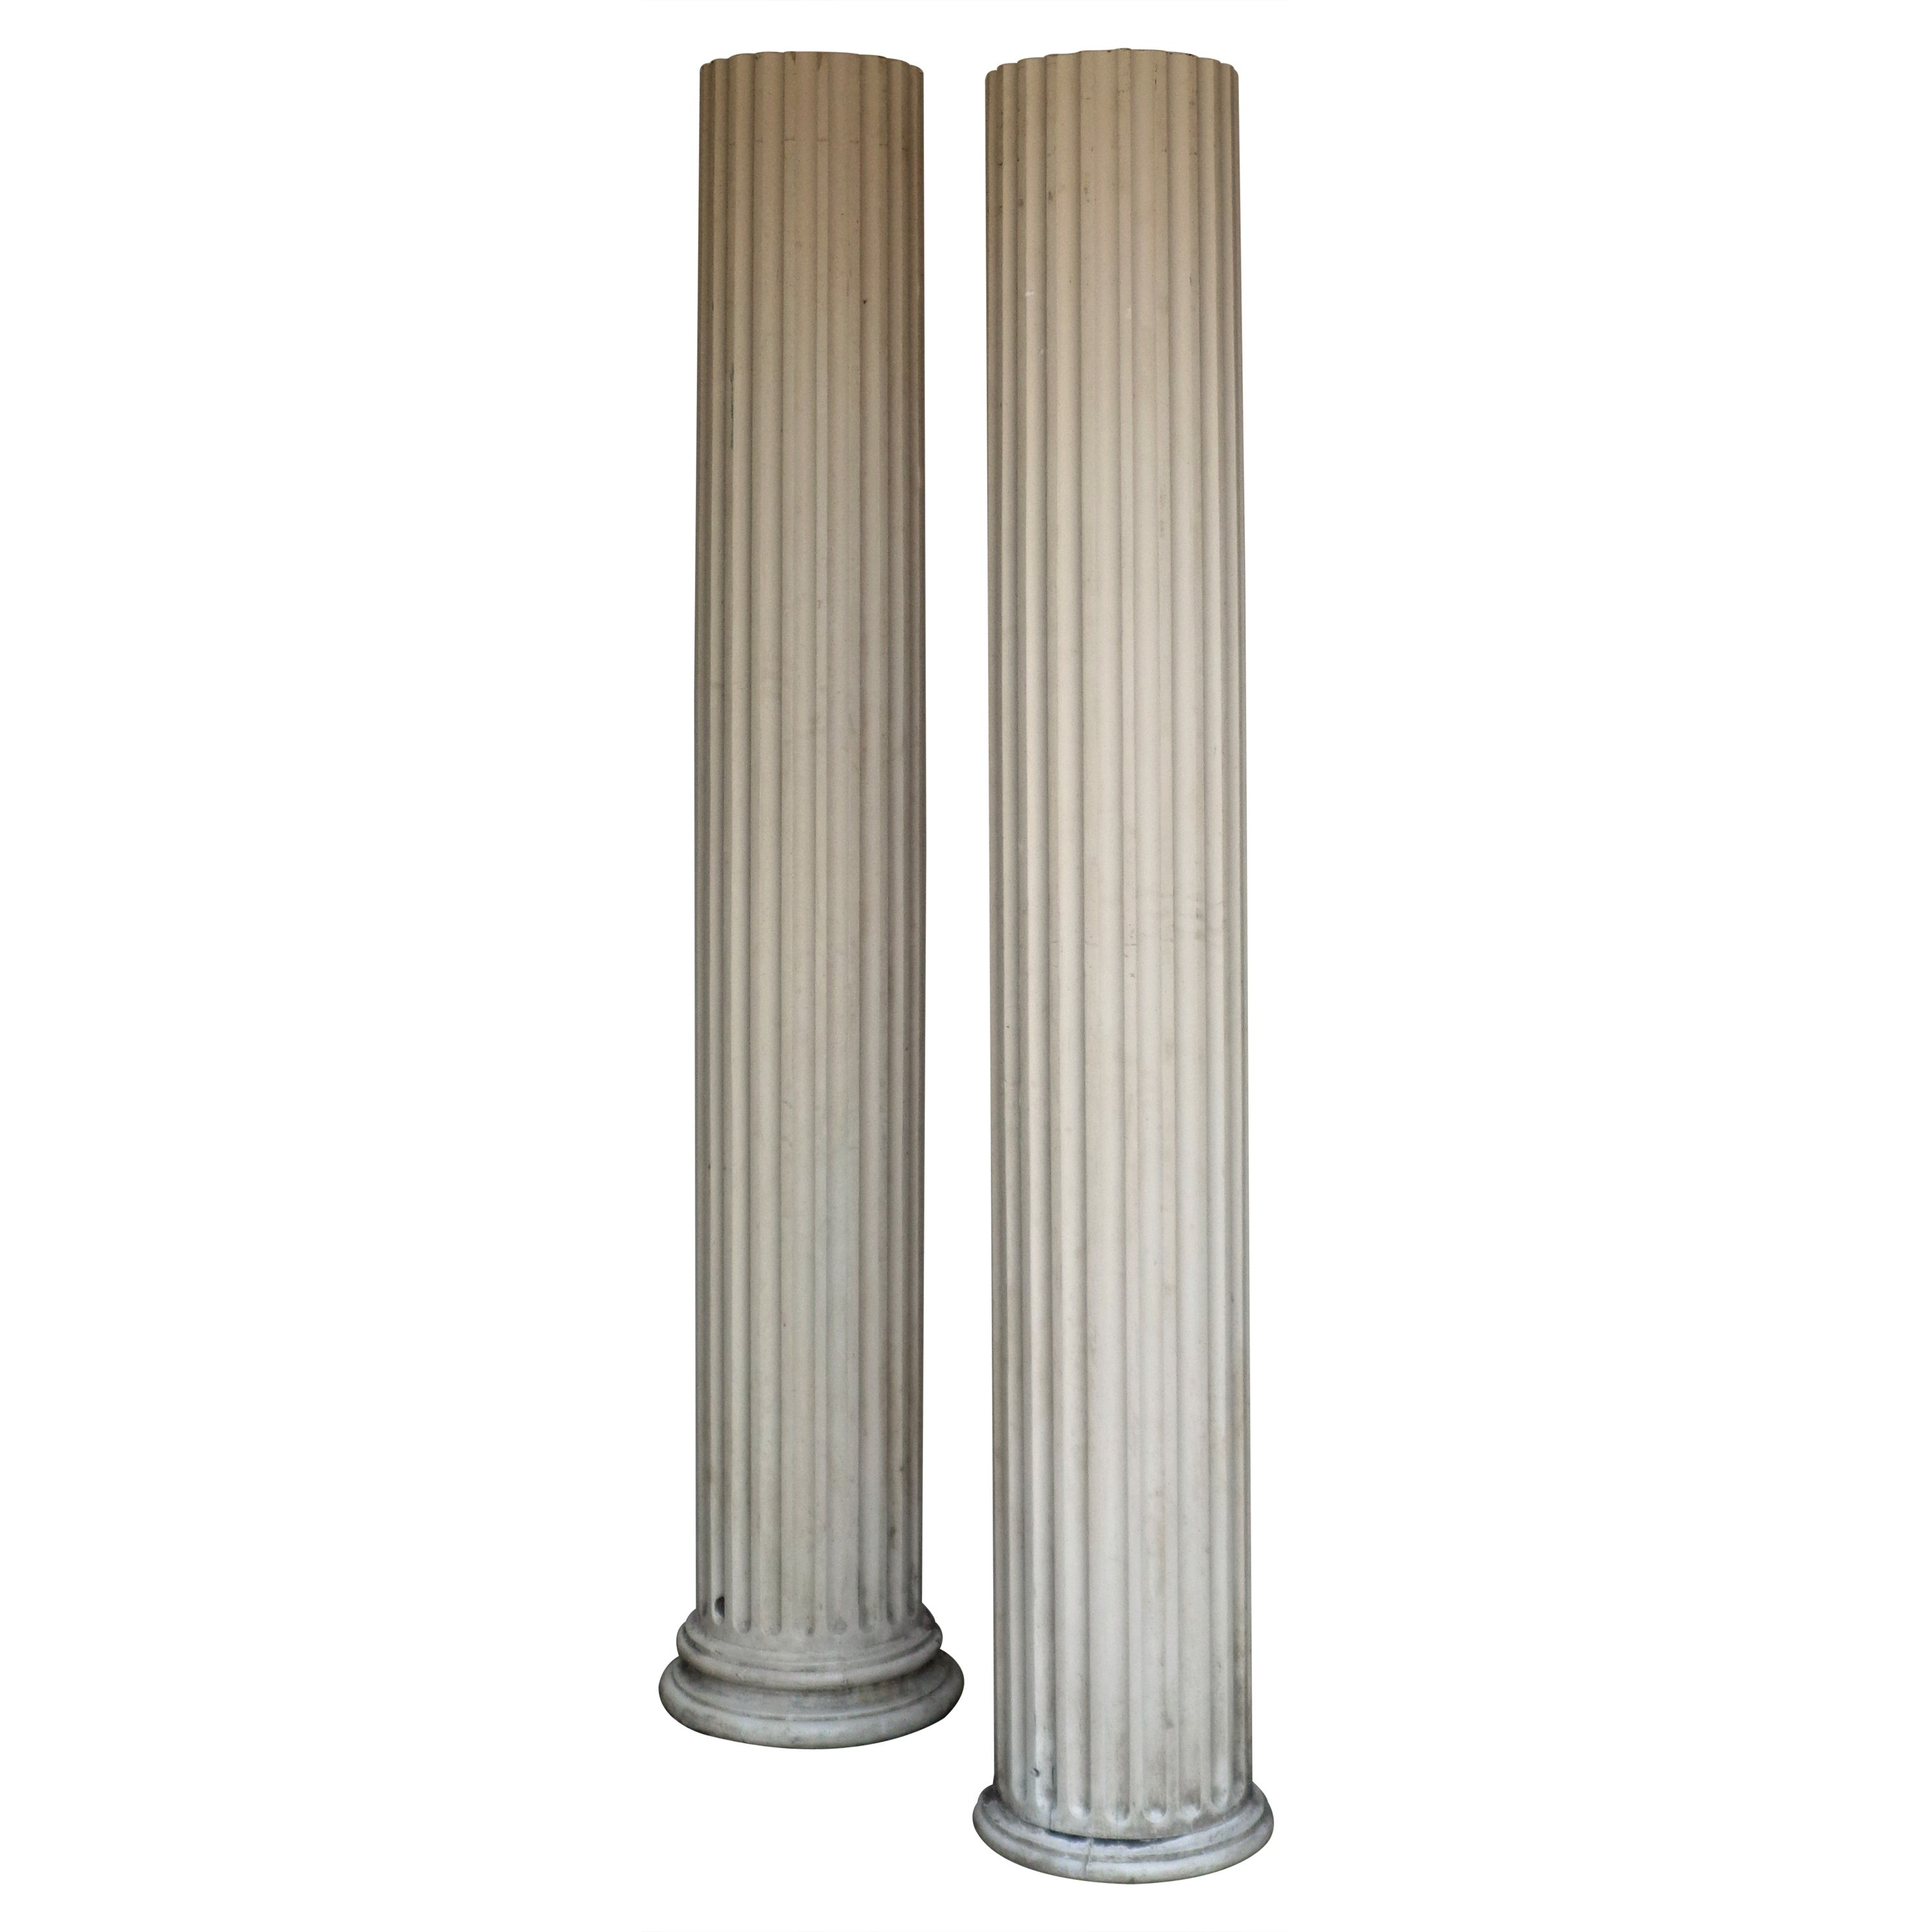 Antique American Architectural Fluted Wood Columns, Circa 1900